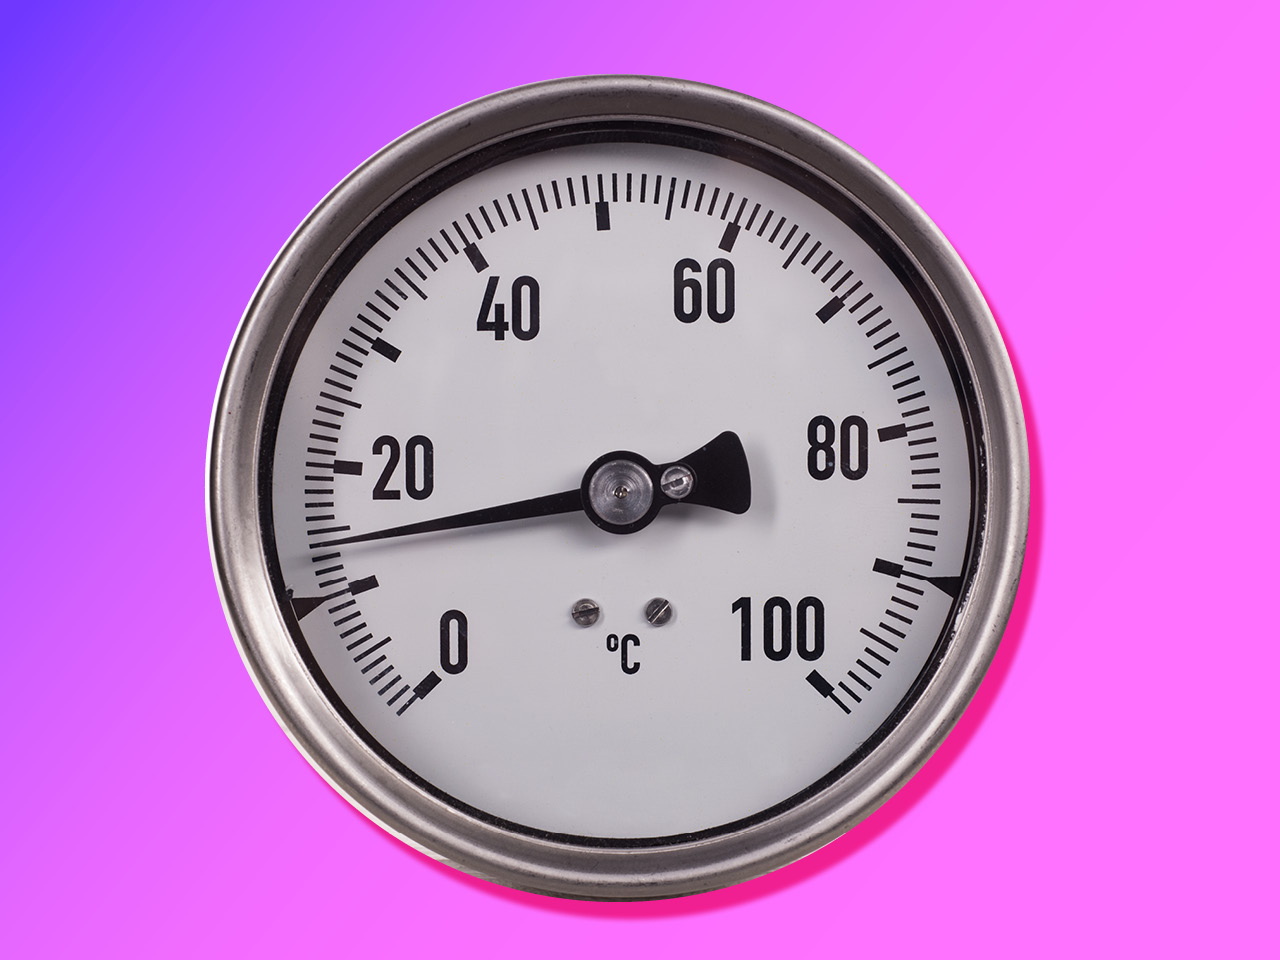 Oven thermometer on purple ombre background.